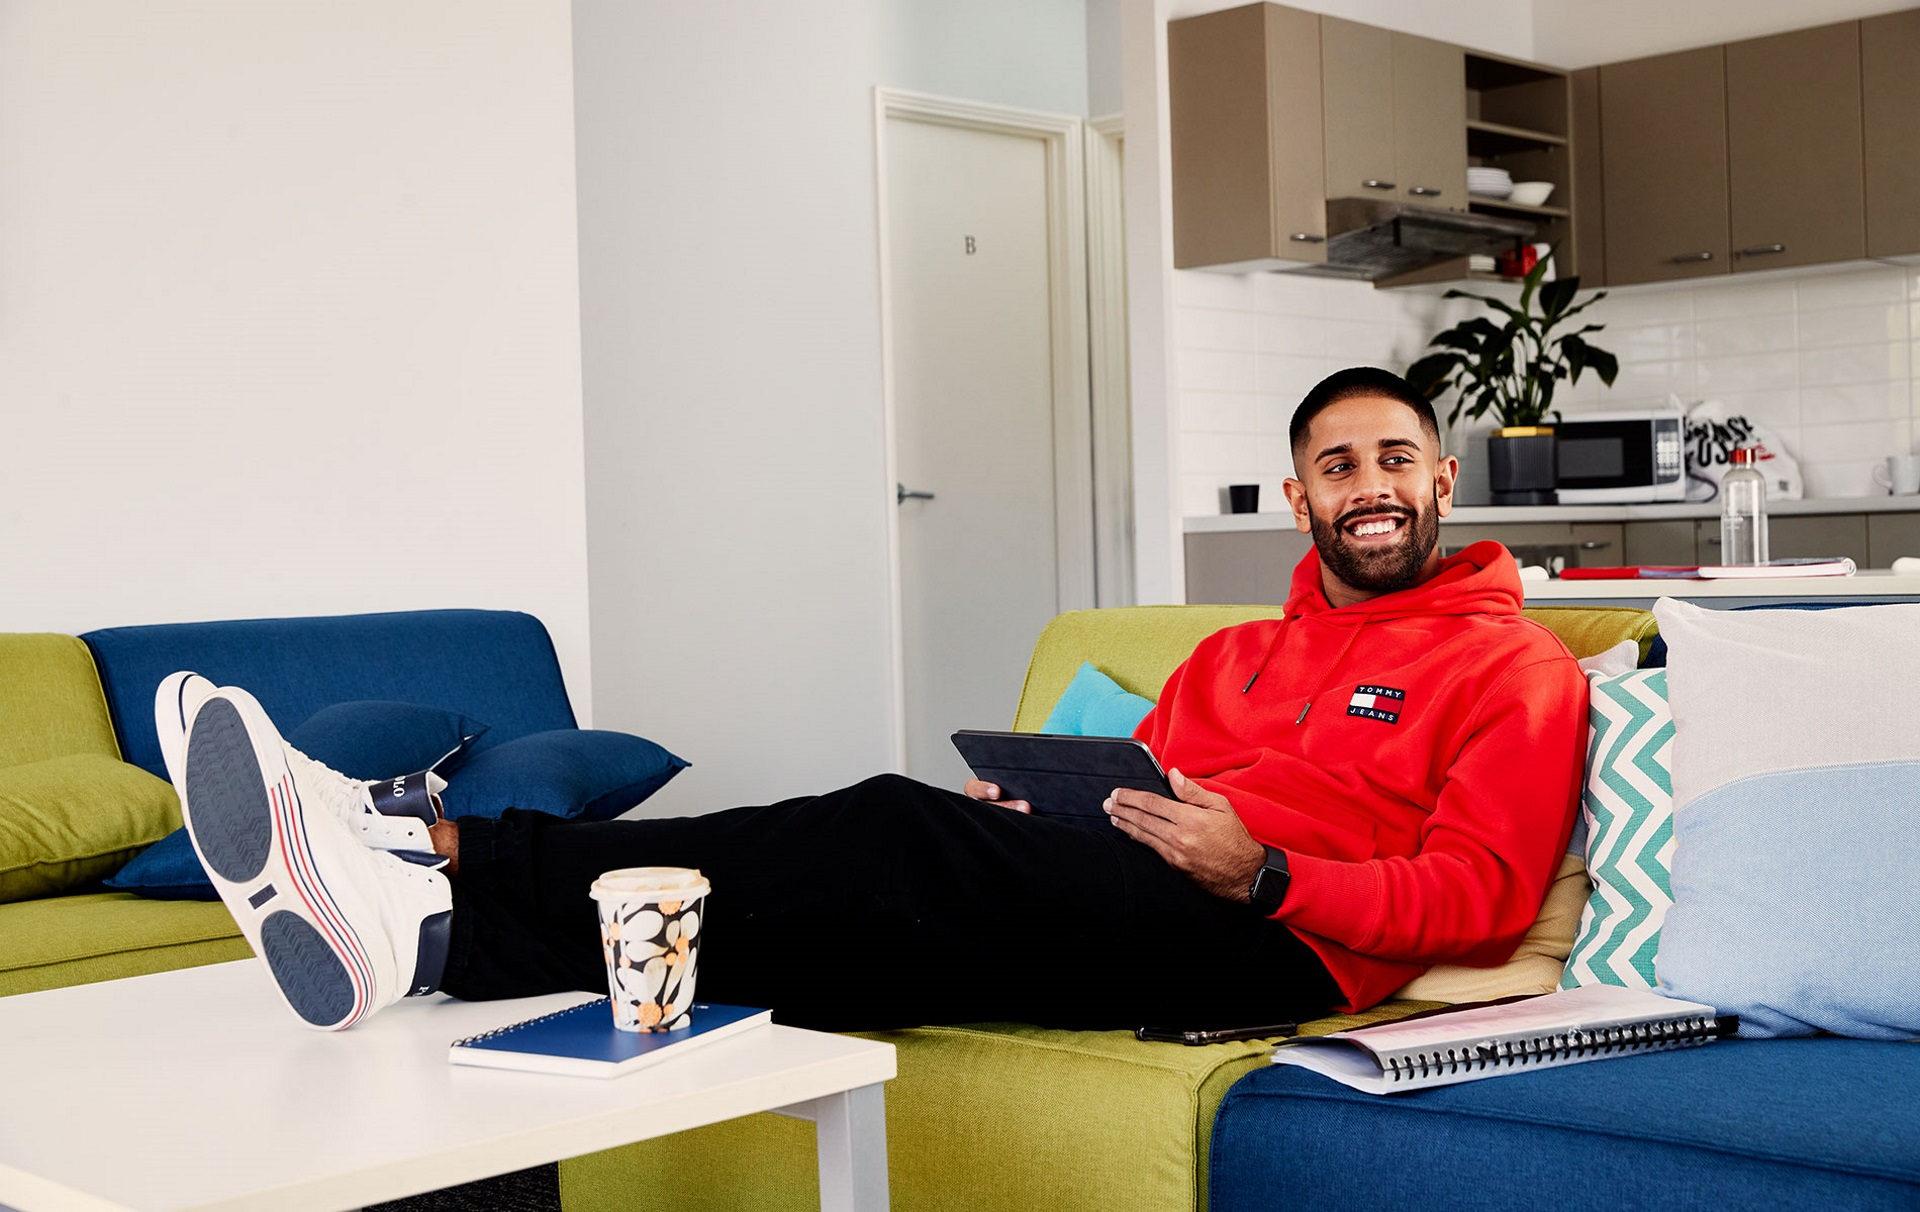 Murdoch student Nikhil sitting on a couch smiling